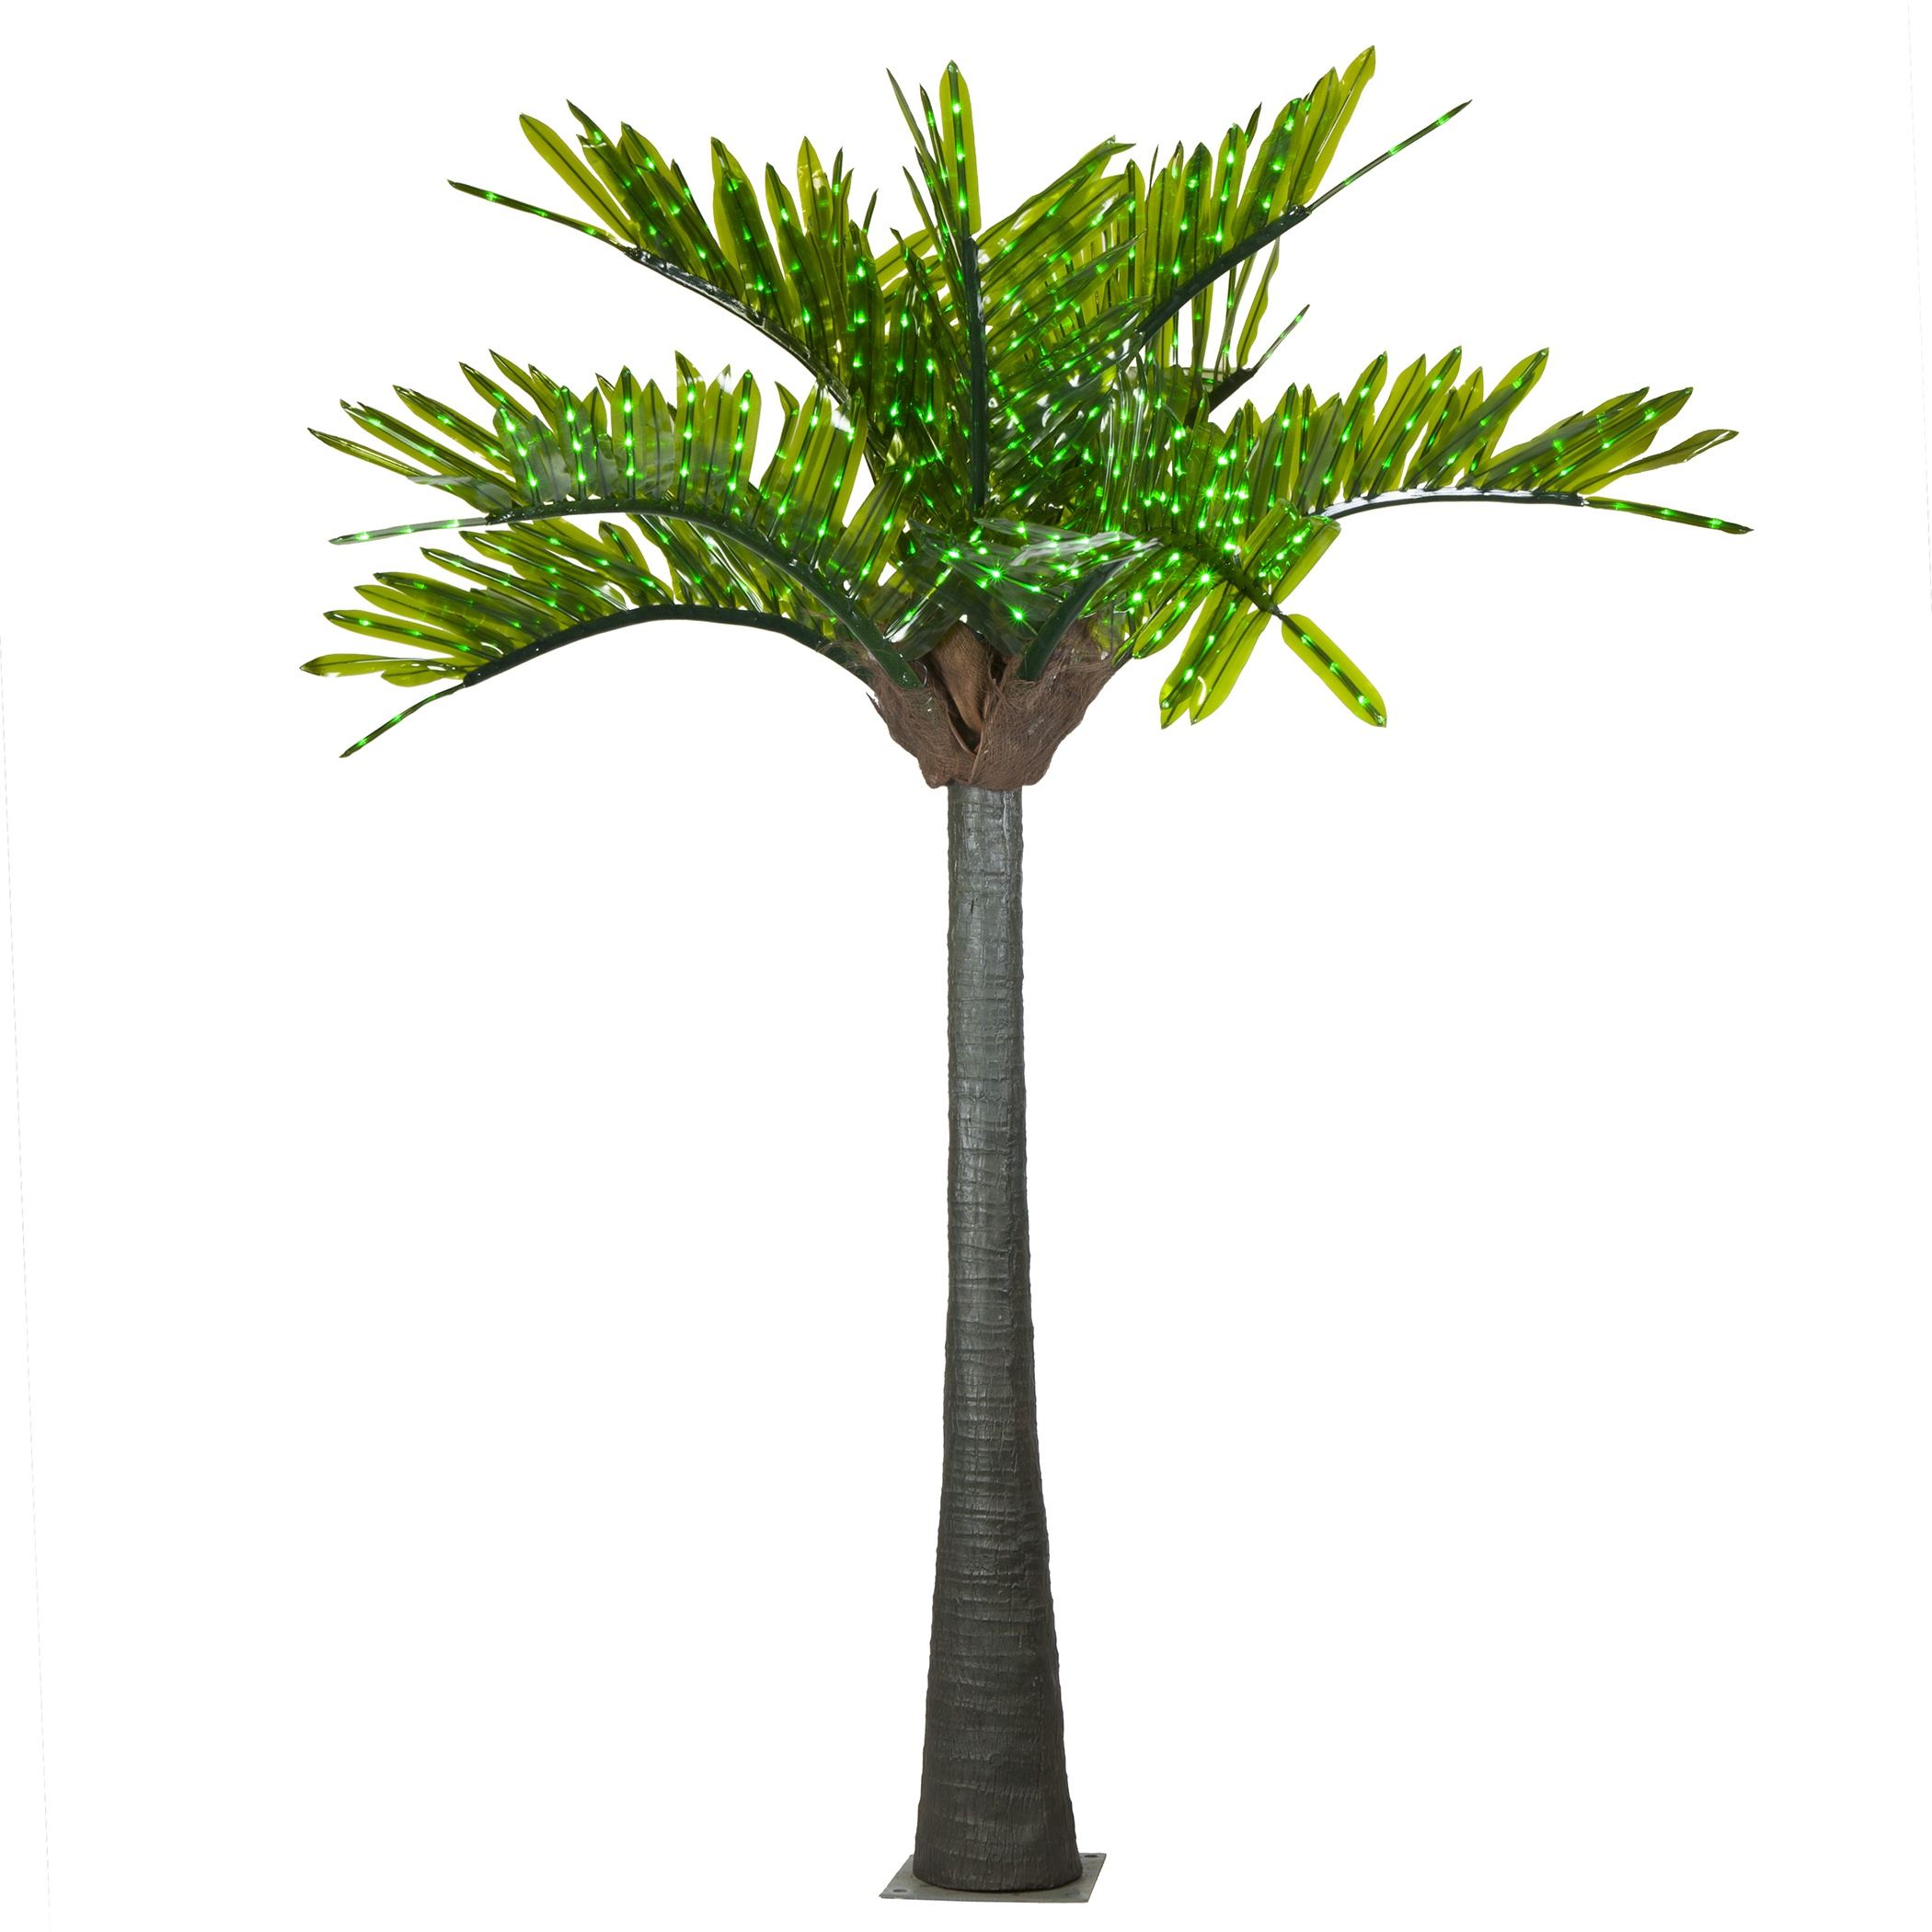 LED realistic commercial palm tree lit